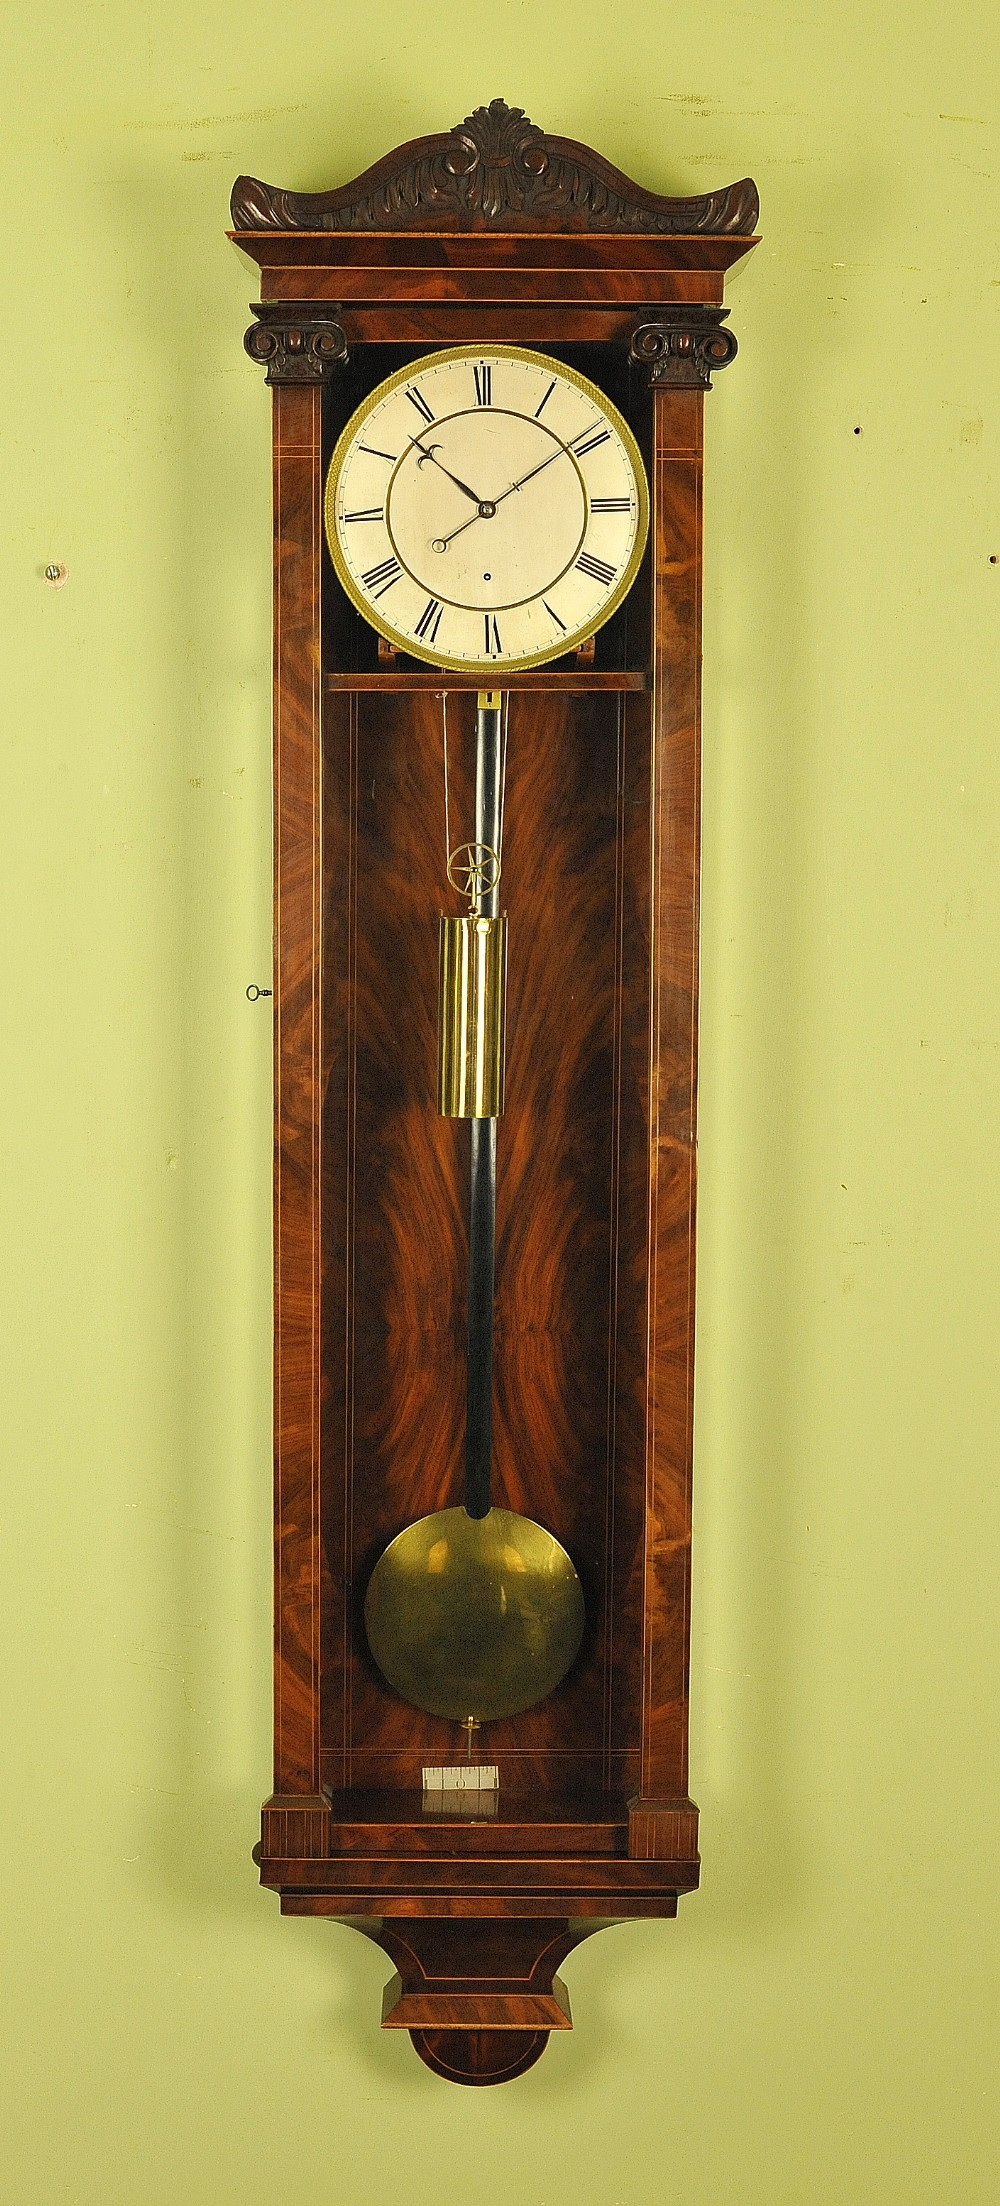 3 month duration dachluhr biedermeier vienna regulator wall clock